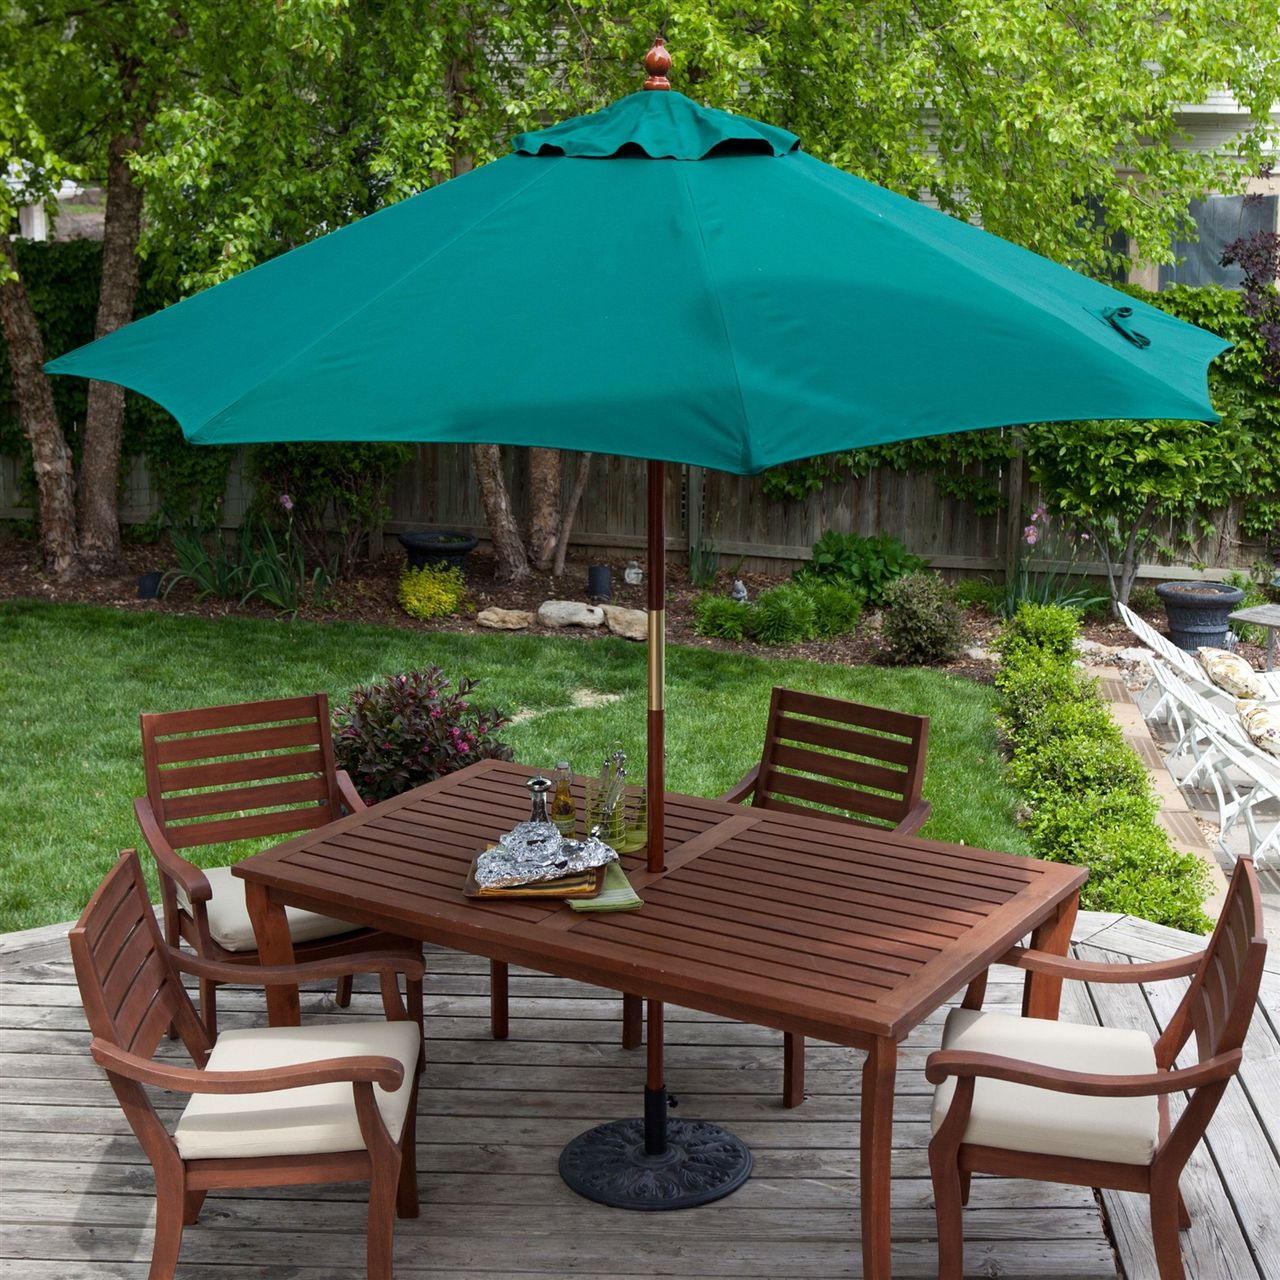 Commercial Grade 8-Ft Patio Umbrella, Forest Green Sunbrella